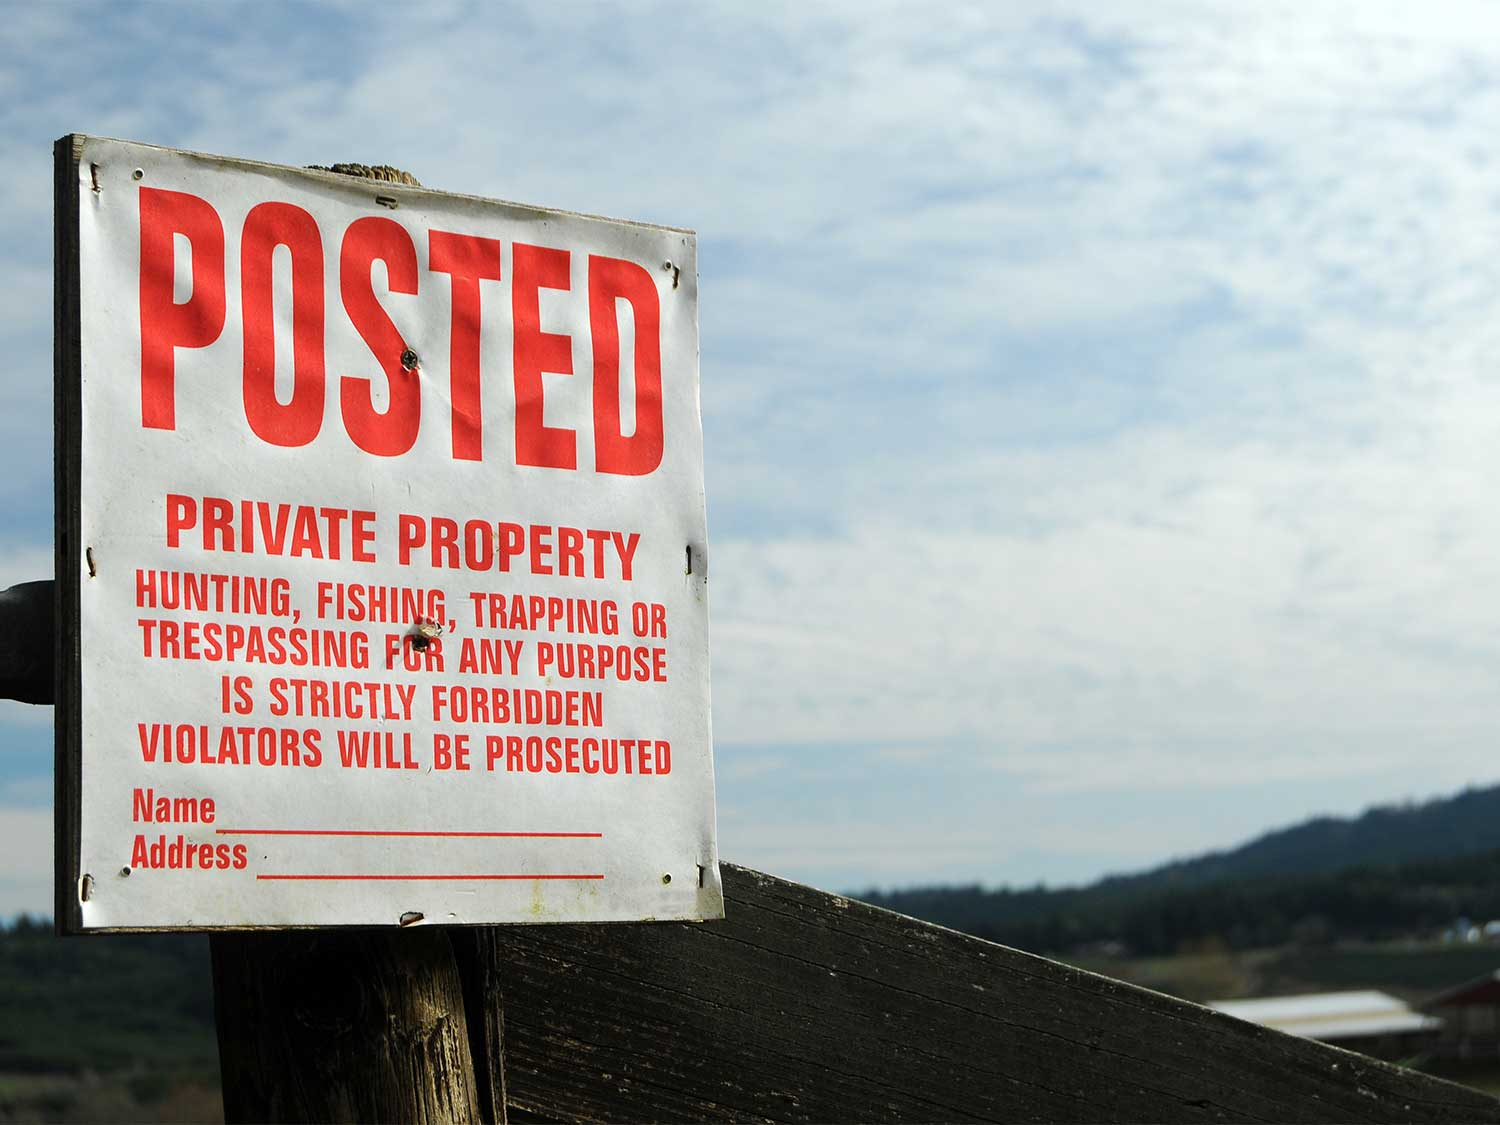 a posted private property